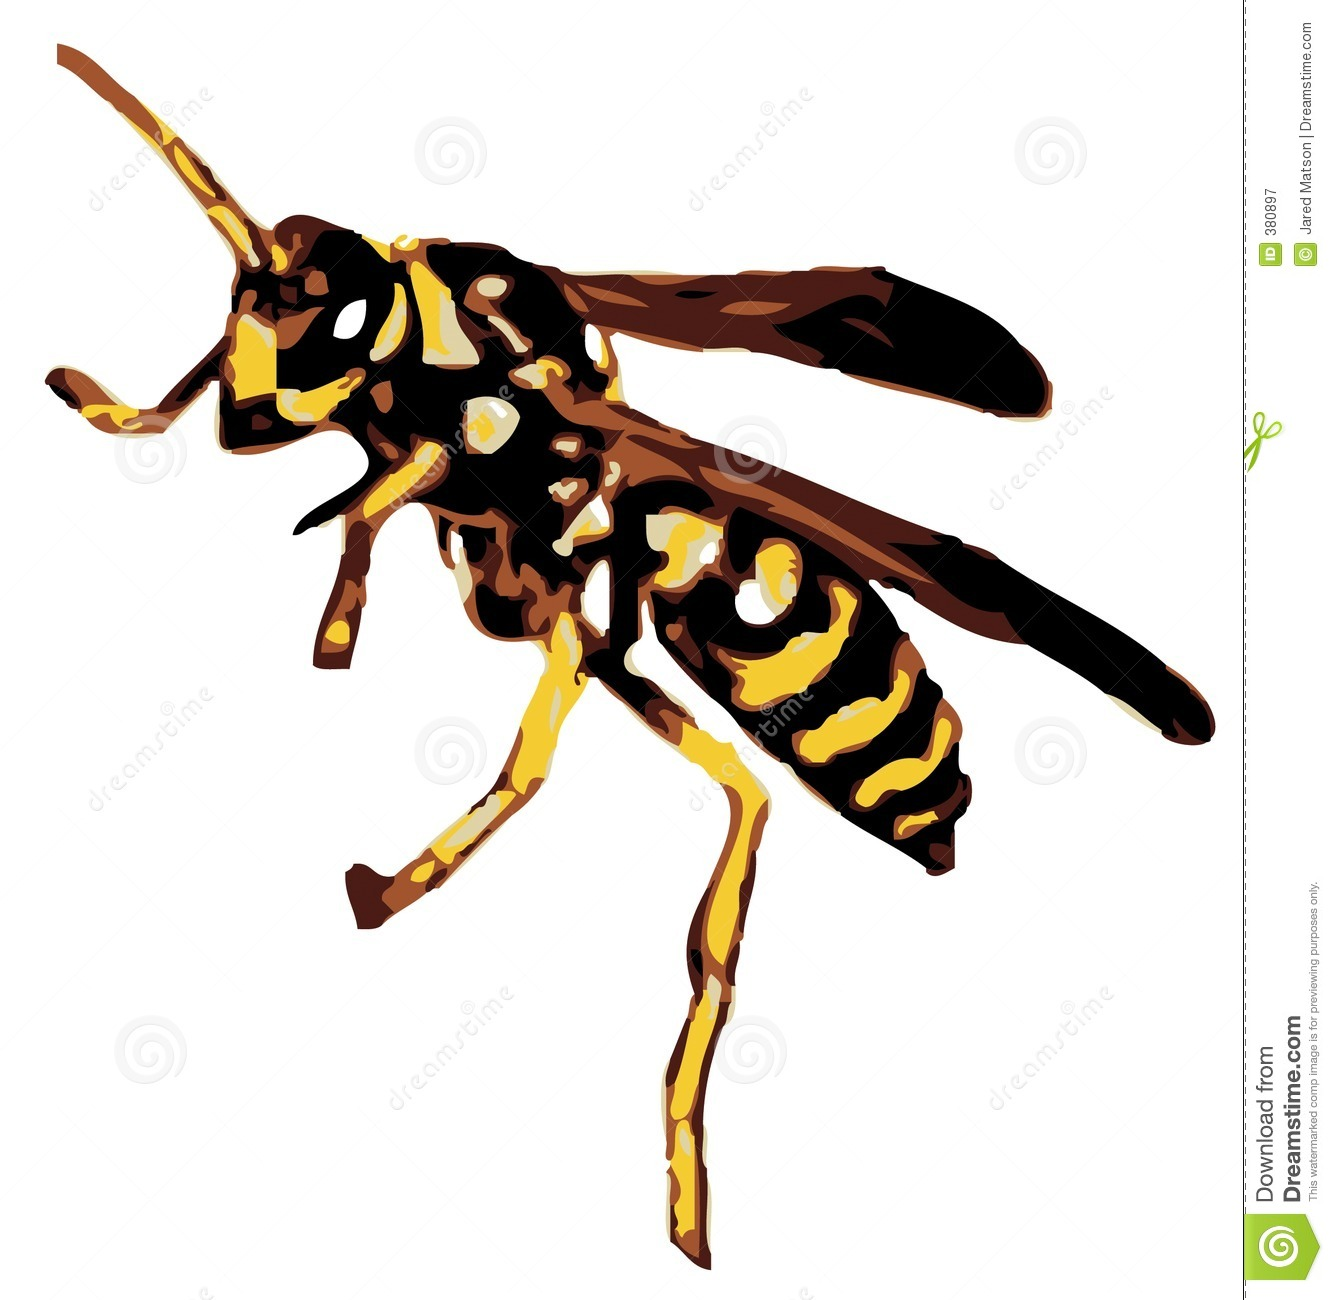 free clip art yellow jacket - photo #20